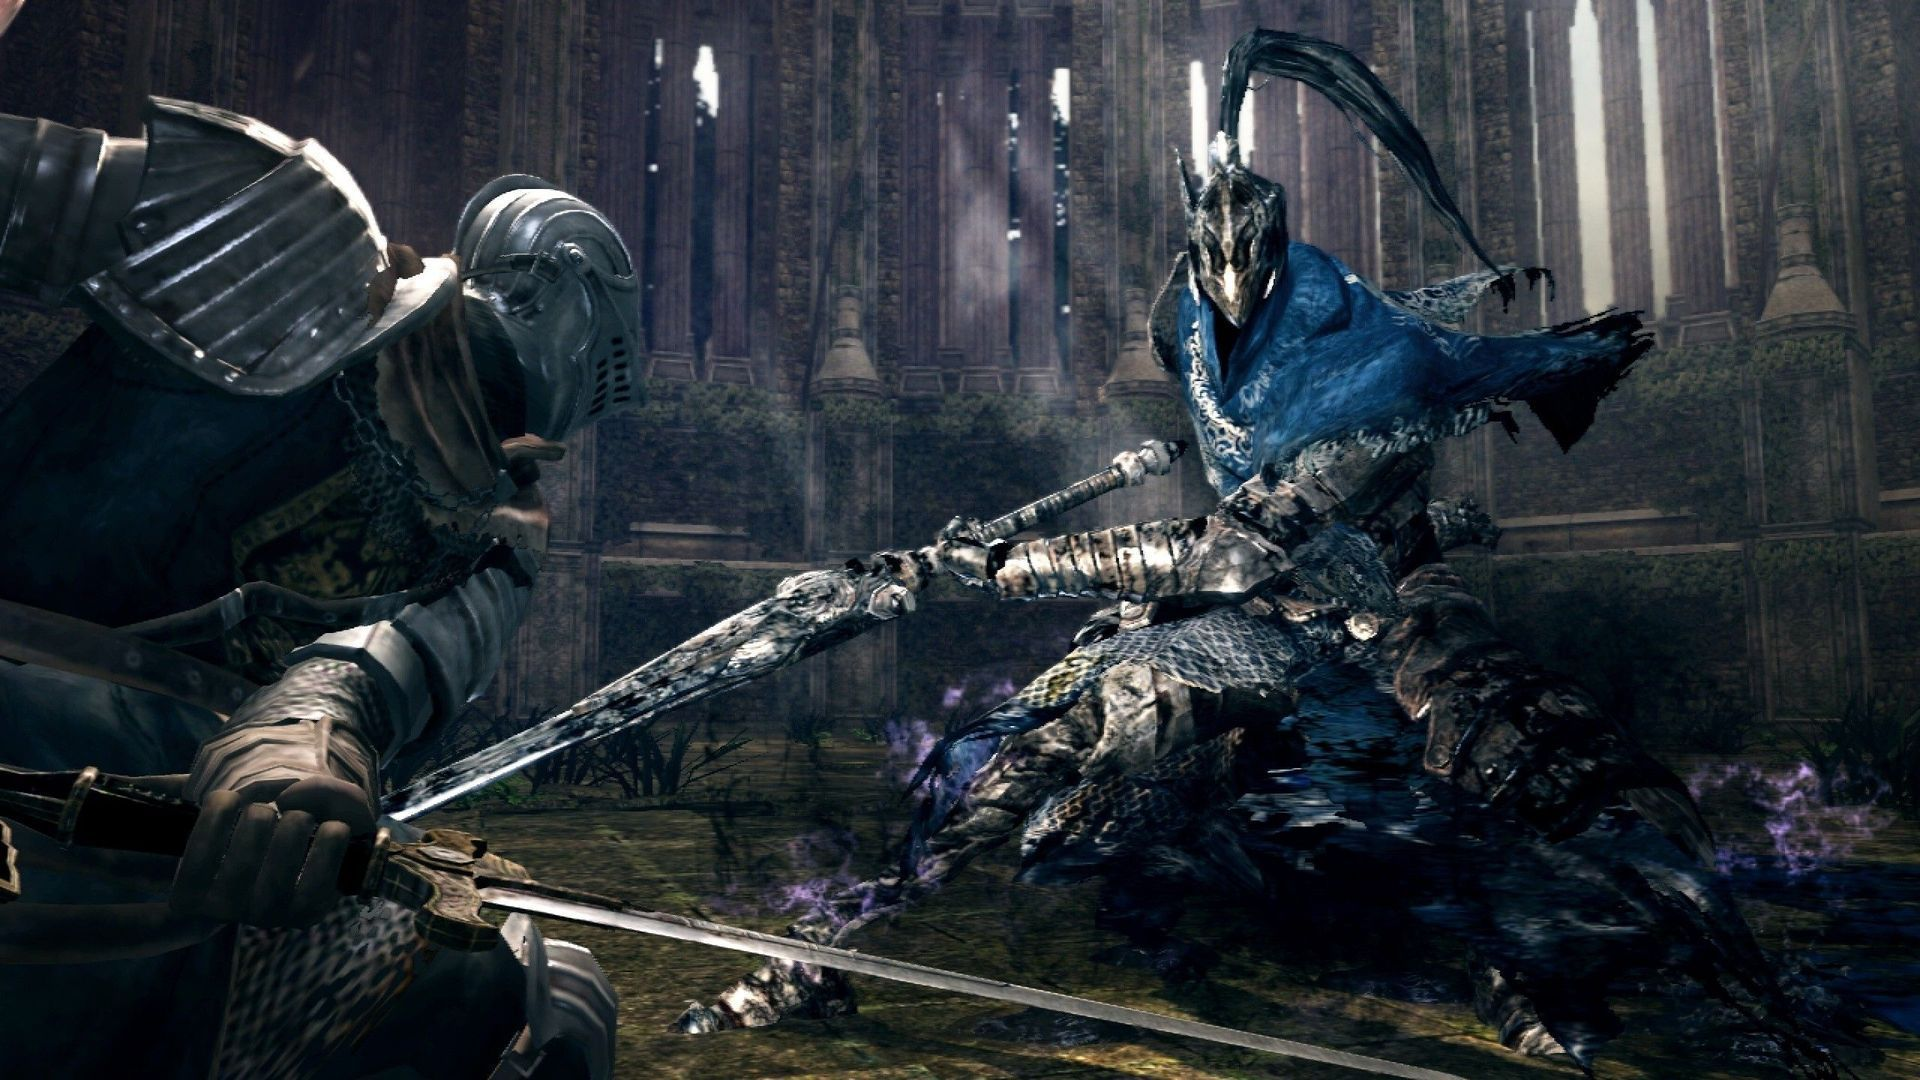 Artorias Wallpaper 1920x1080 Hd Wallpaper For Desktop Background